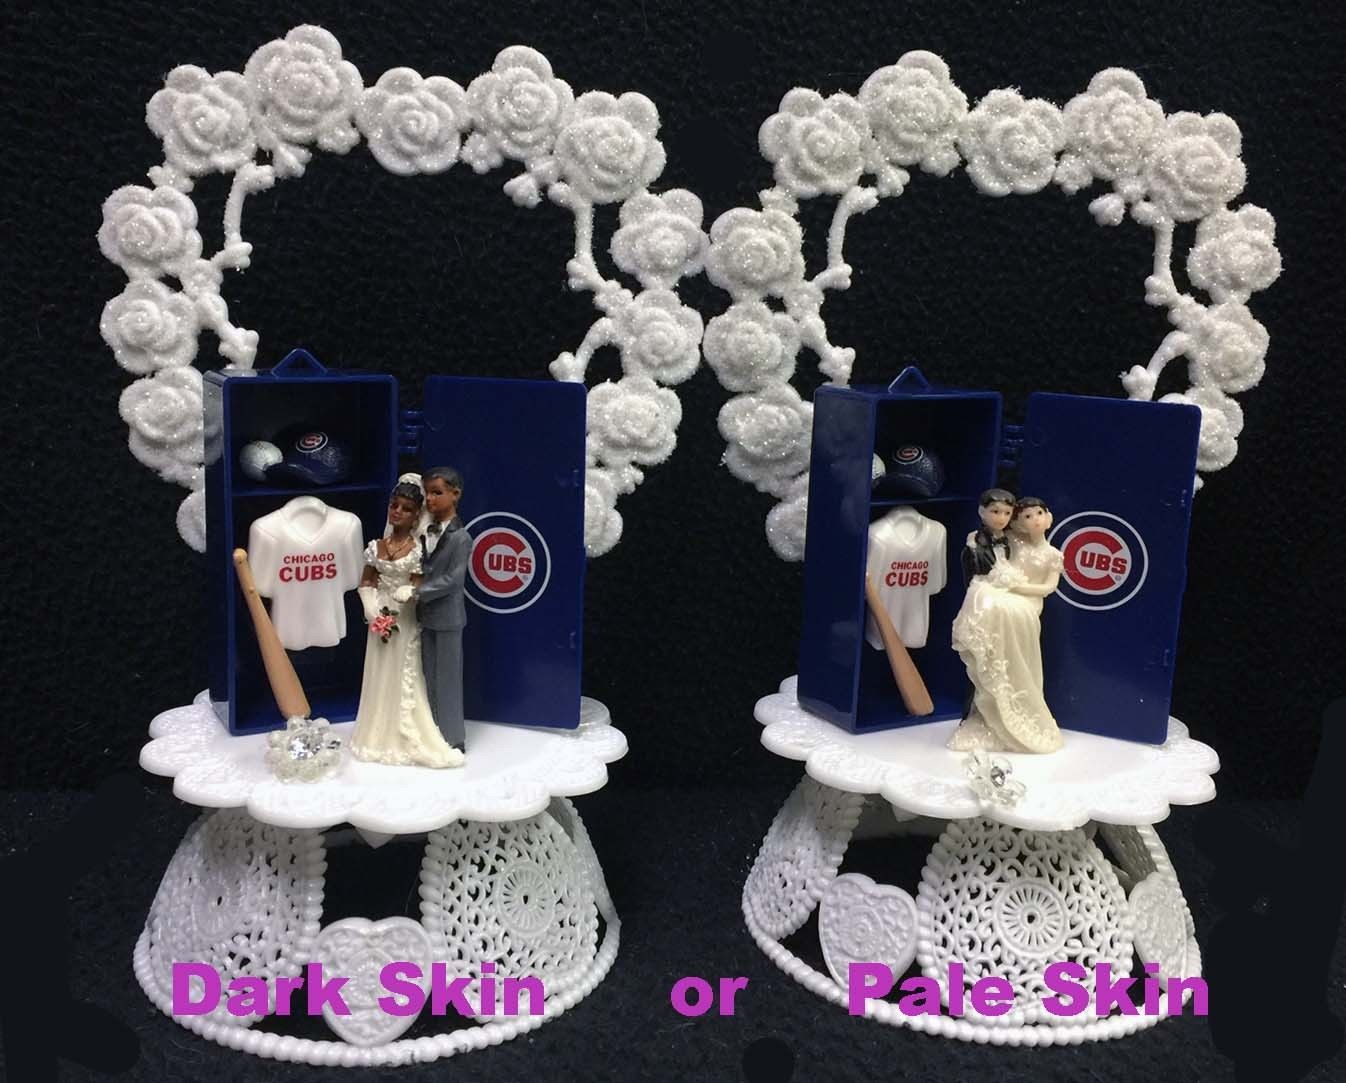 Chicago Cubs MLB Baseball Wedding Cake Topper Groom top Man Cave Sport Home Run - $39.90